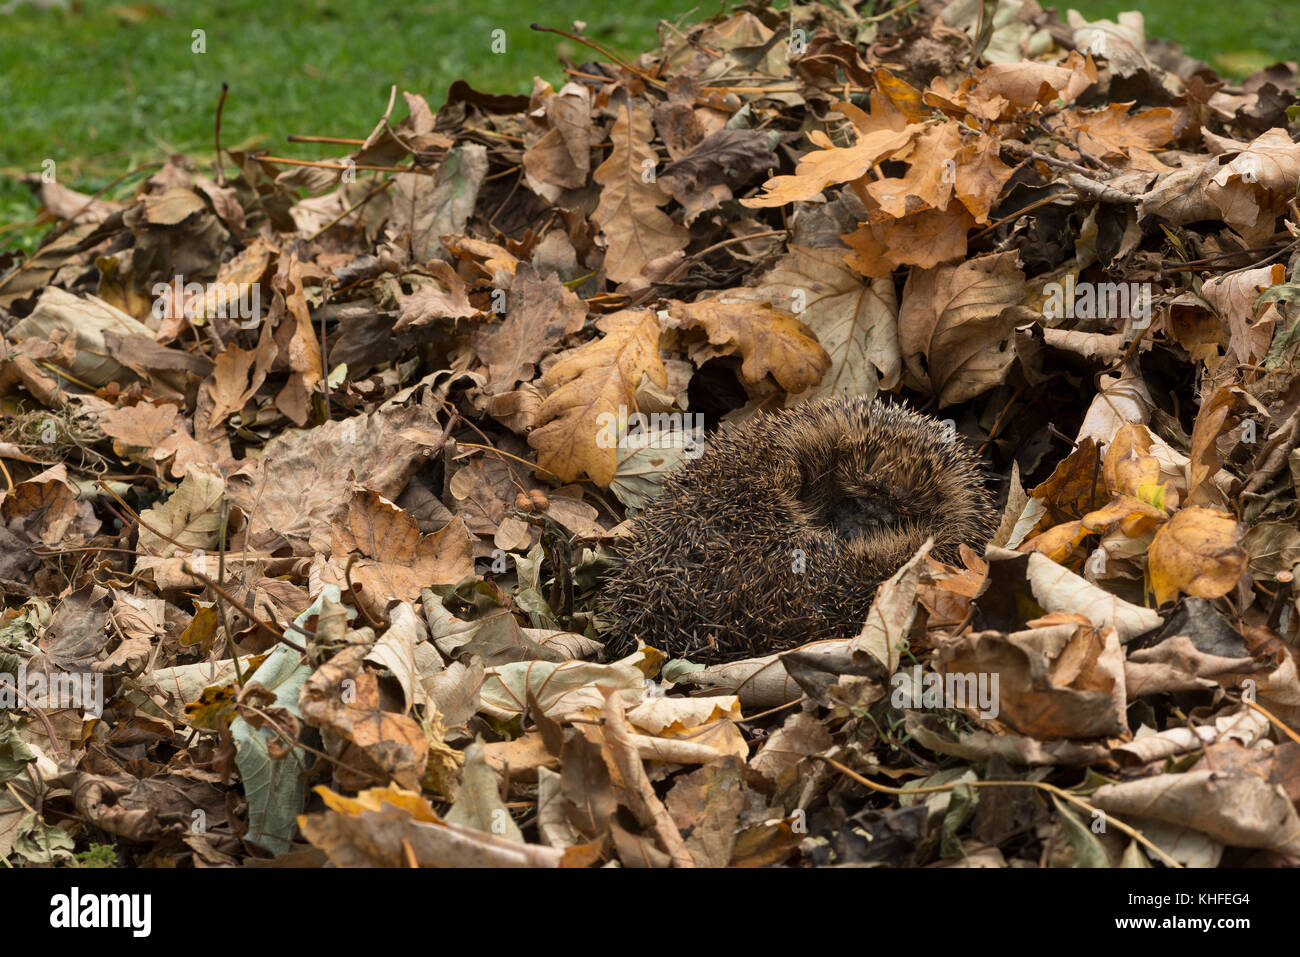 Curled up hedgehog making the most of the autumn sunshine before hibernating for the winter, fast asleep, mopping - Stock Image